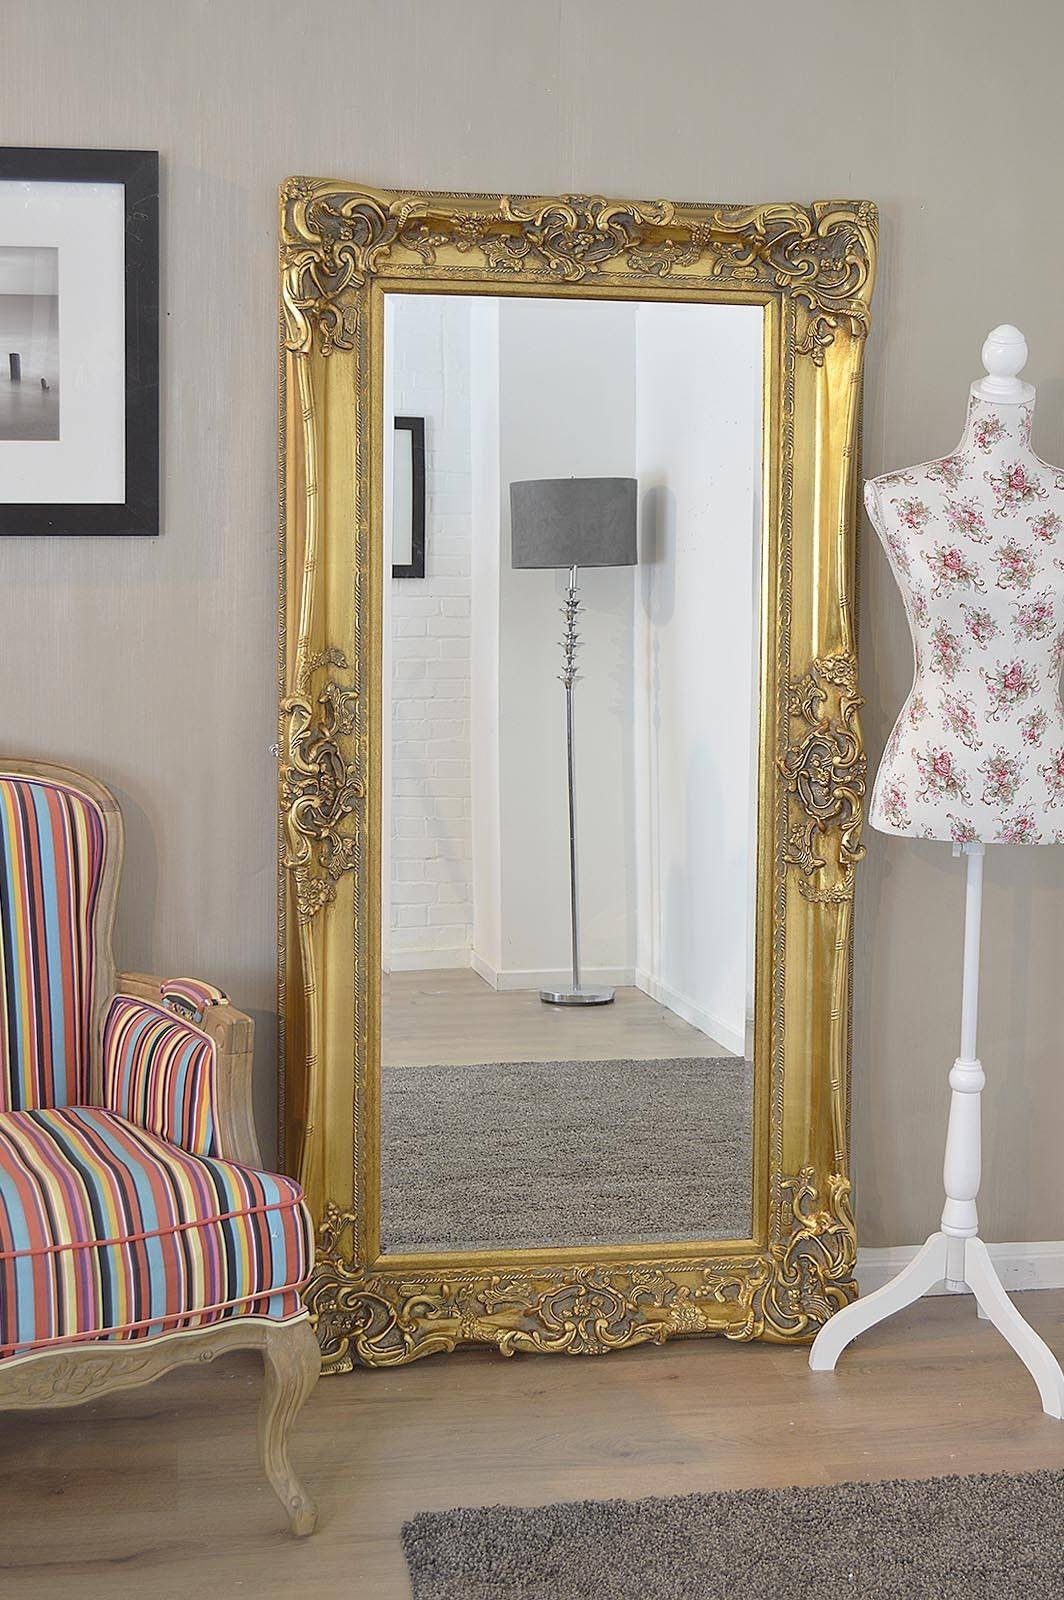 Old Fashioned Wall Mirrors Antique Mirror Wall Covering Vintage in Large Antiqued Mirrors (Image 22 of 25)